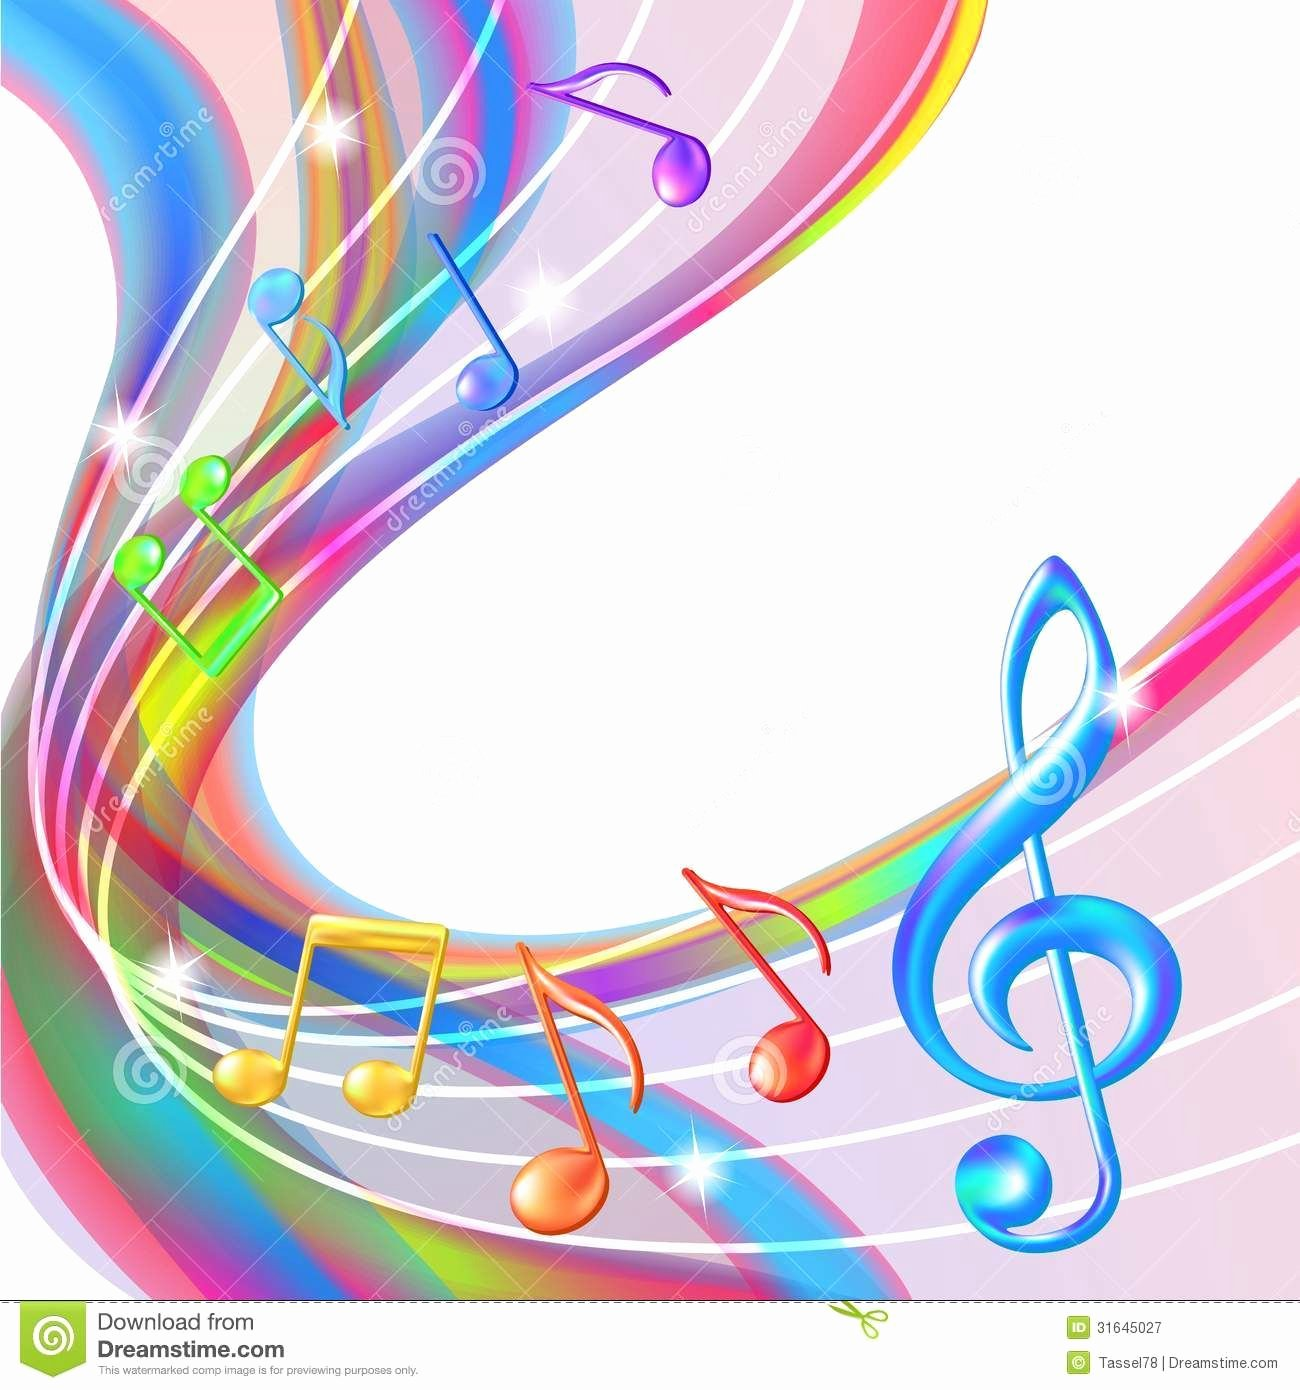 Free Music Background Images Unique Colorful Abstract Notes Music Background Download From Over 36 Million High Quality Stock